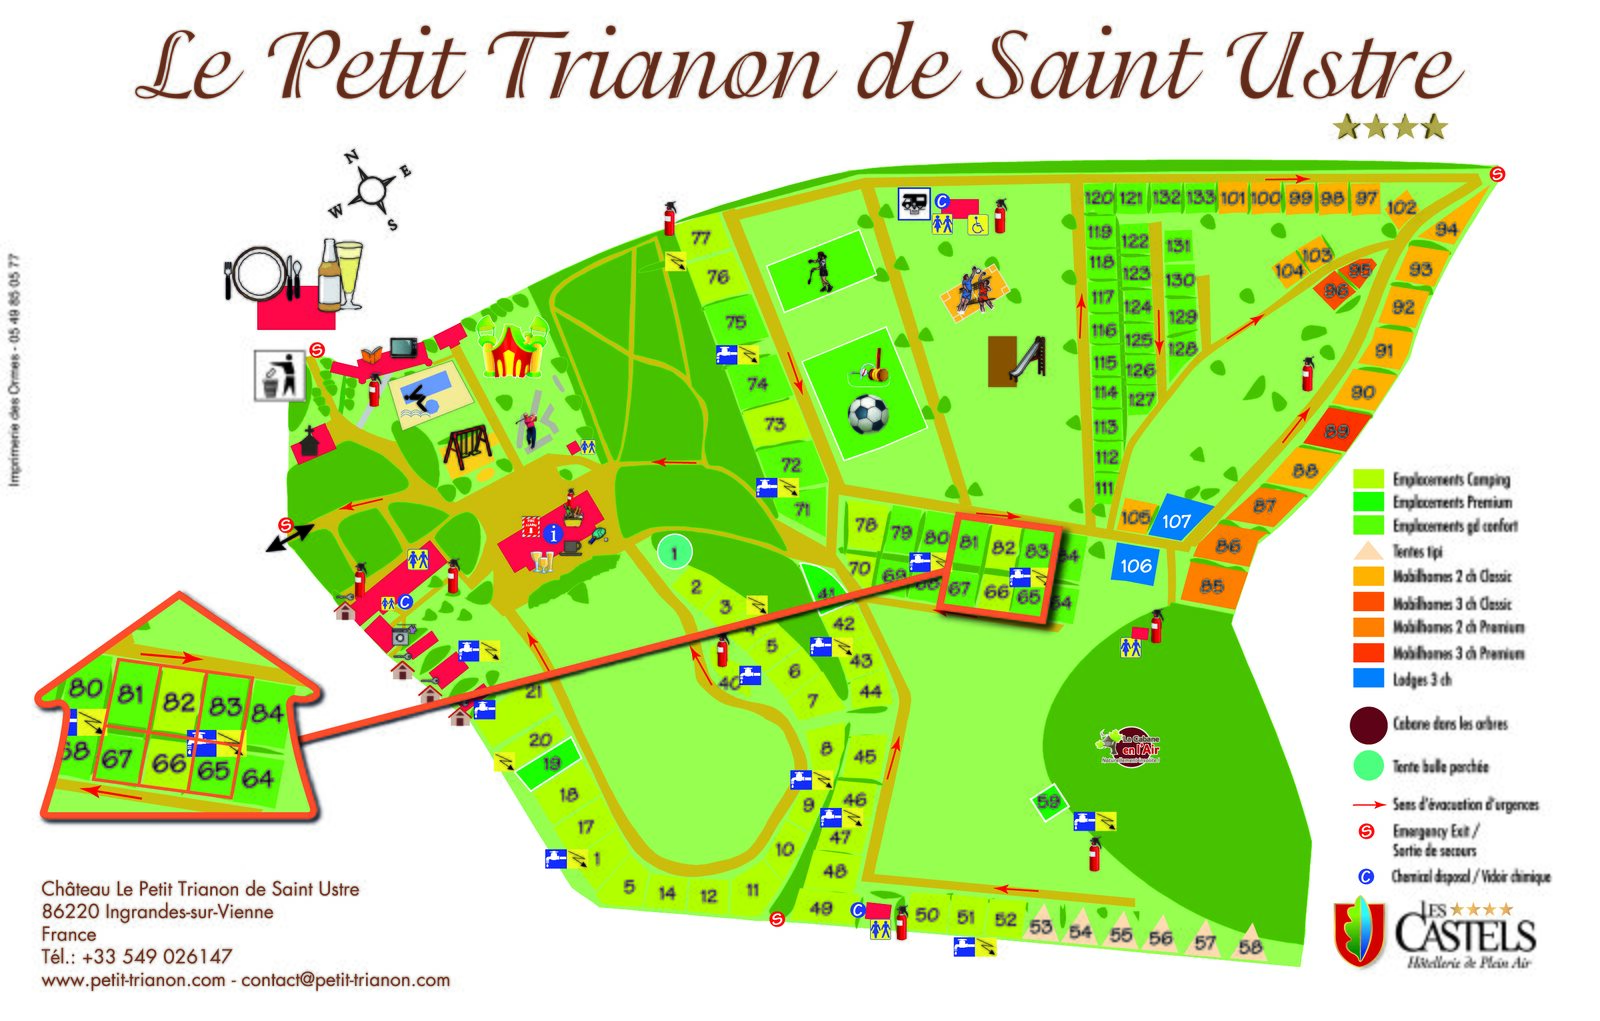 Map of Le Petit Trianon